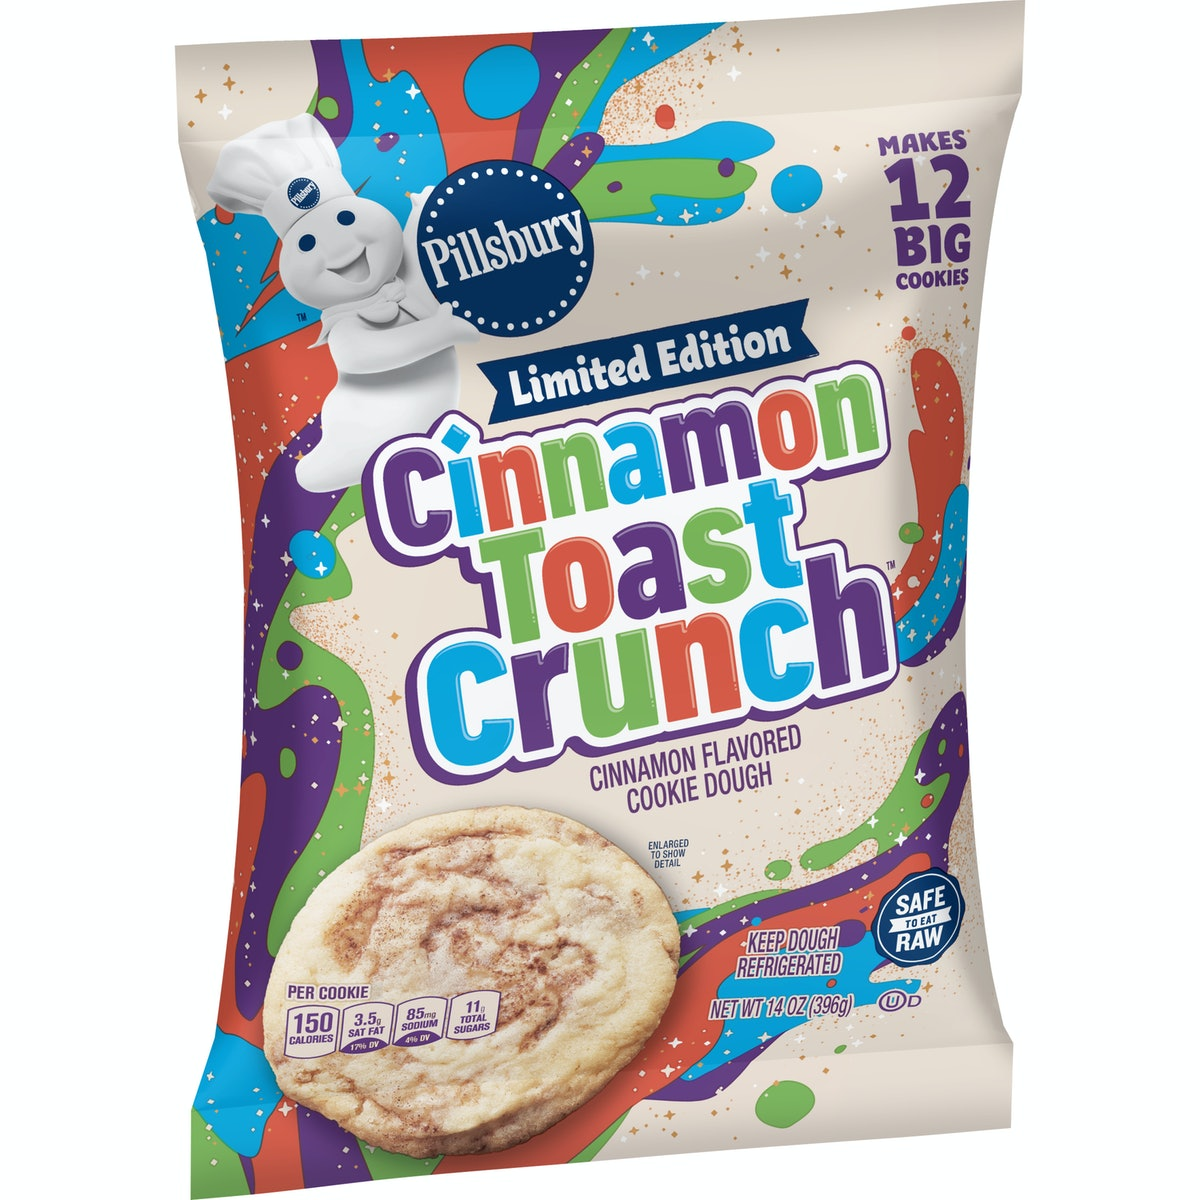 Here's where to buy Pillsbury's Cinnamon Toast Crunch Cookie Dough and Cinnamon Rolls for a sweet bite.